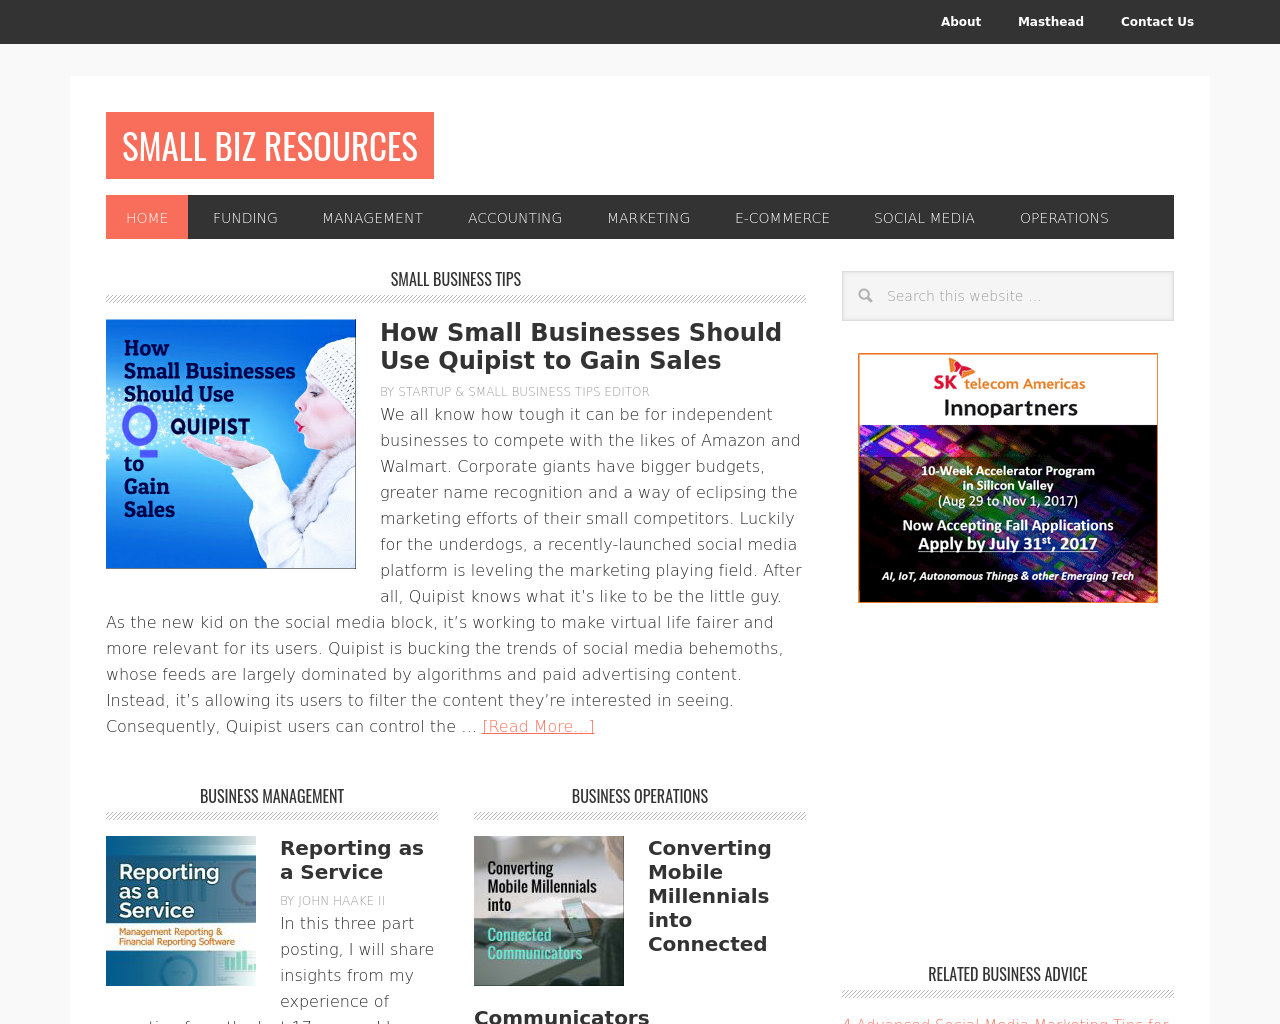 Small-Biz-Resources-Advertising-Reviews-Pricing